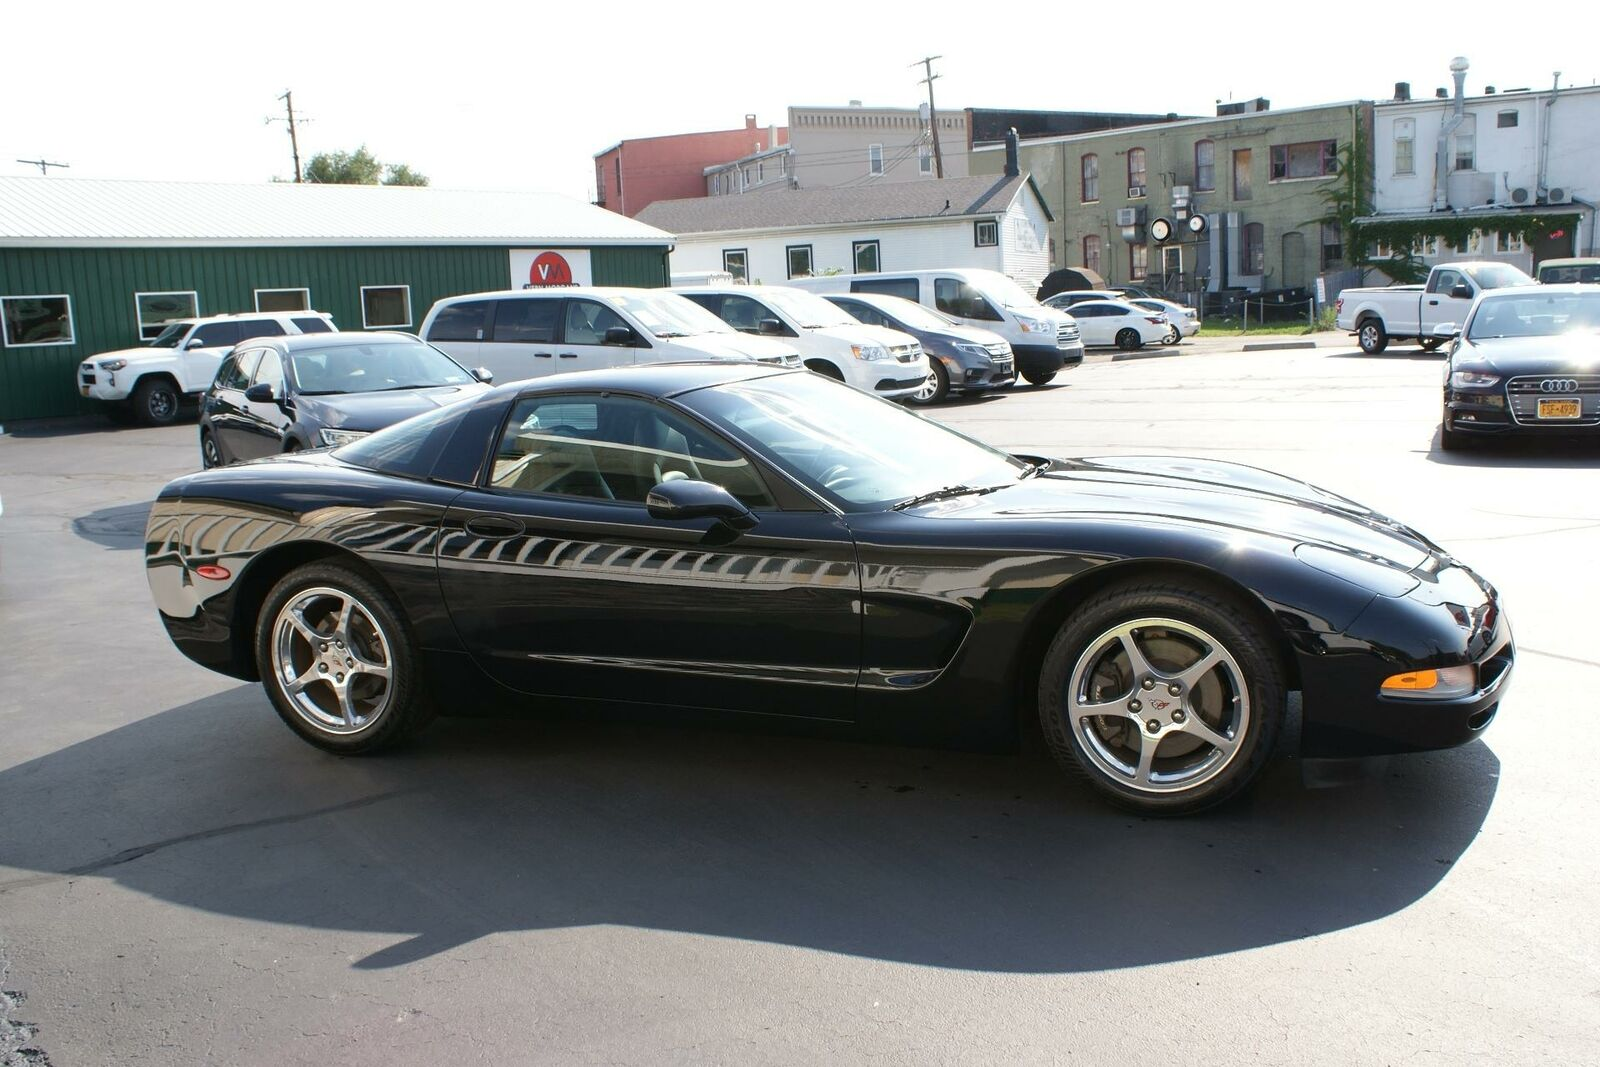 2004 Black Chevrolet Corvette   | C5 Corvette Photo 8